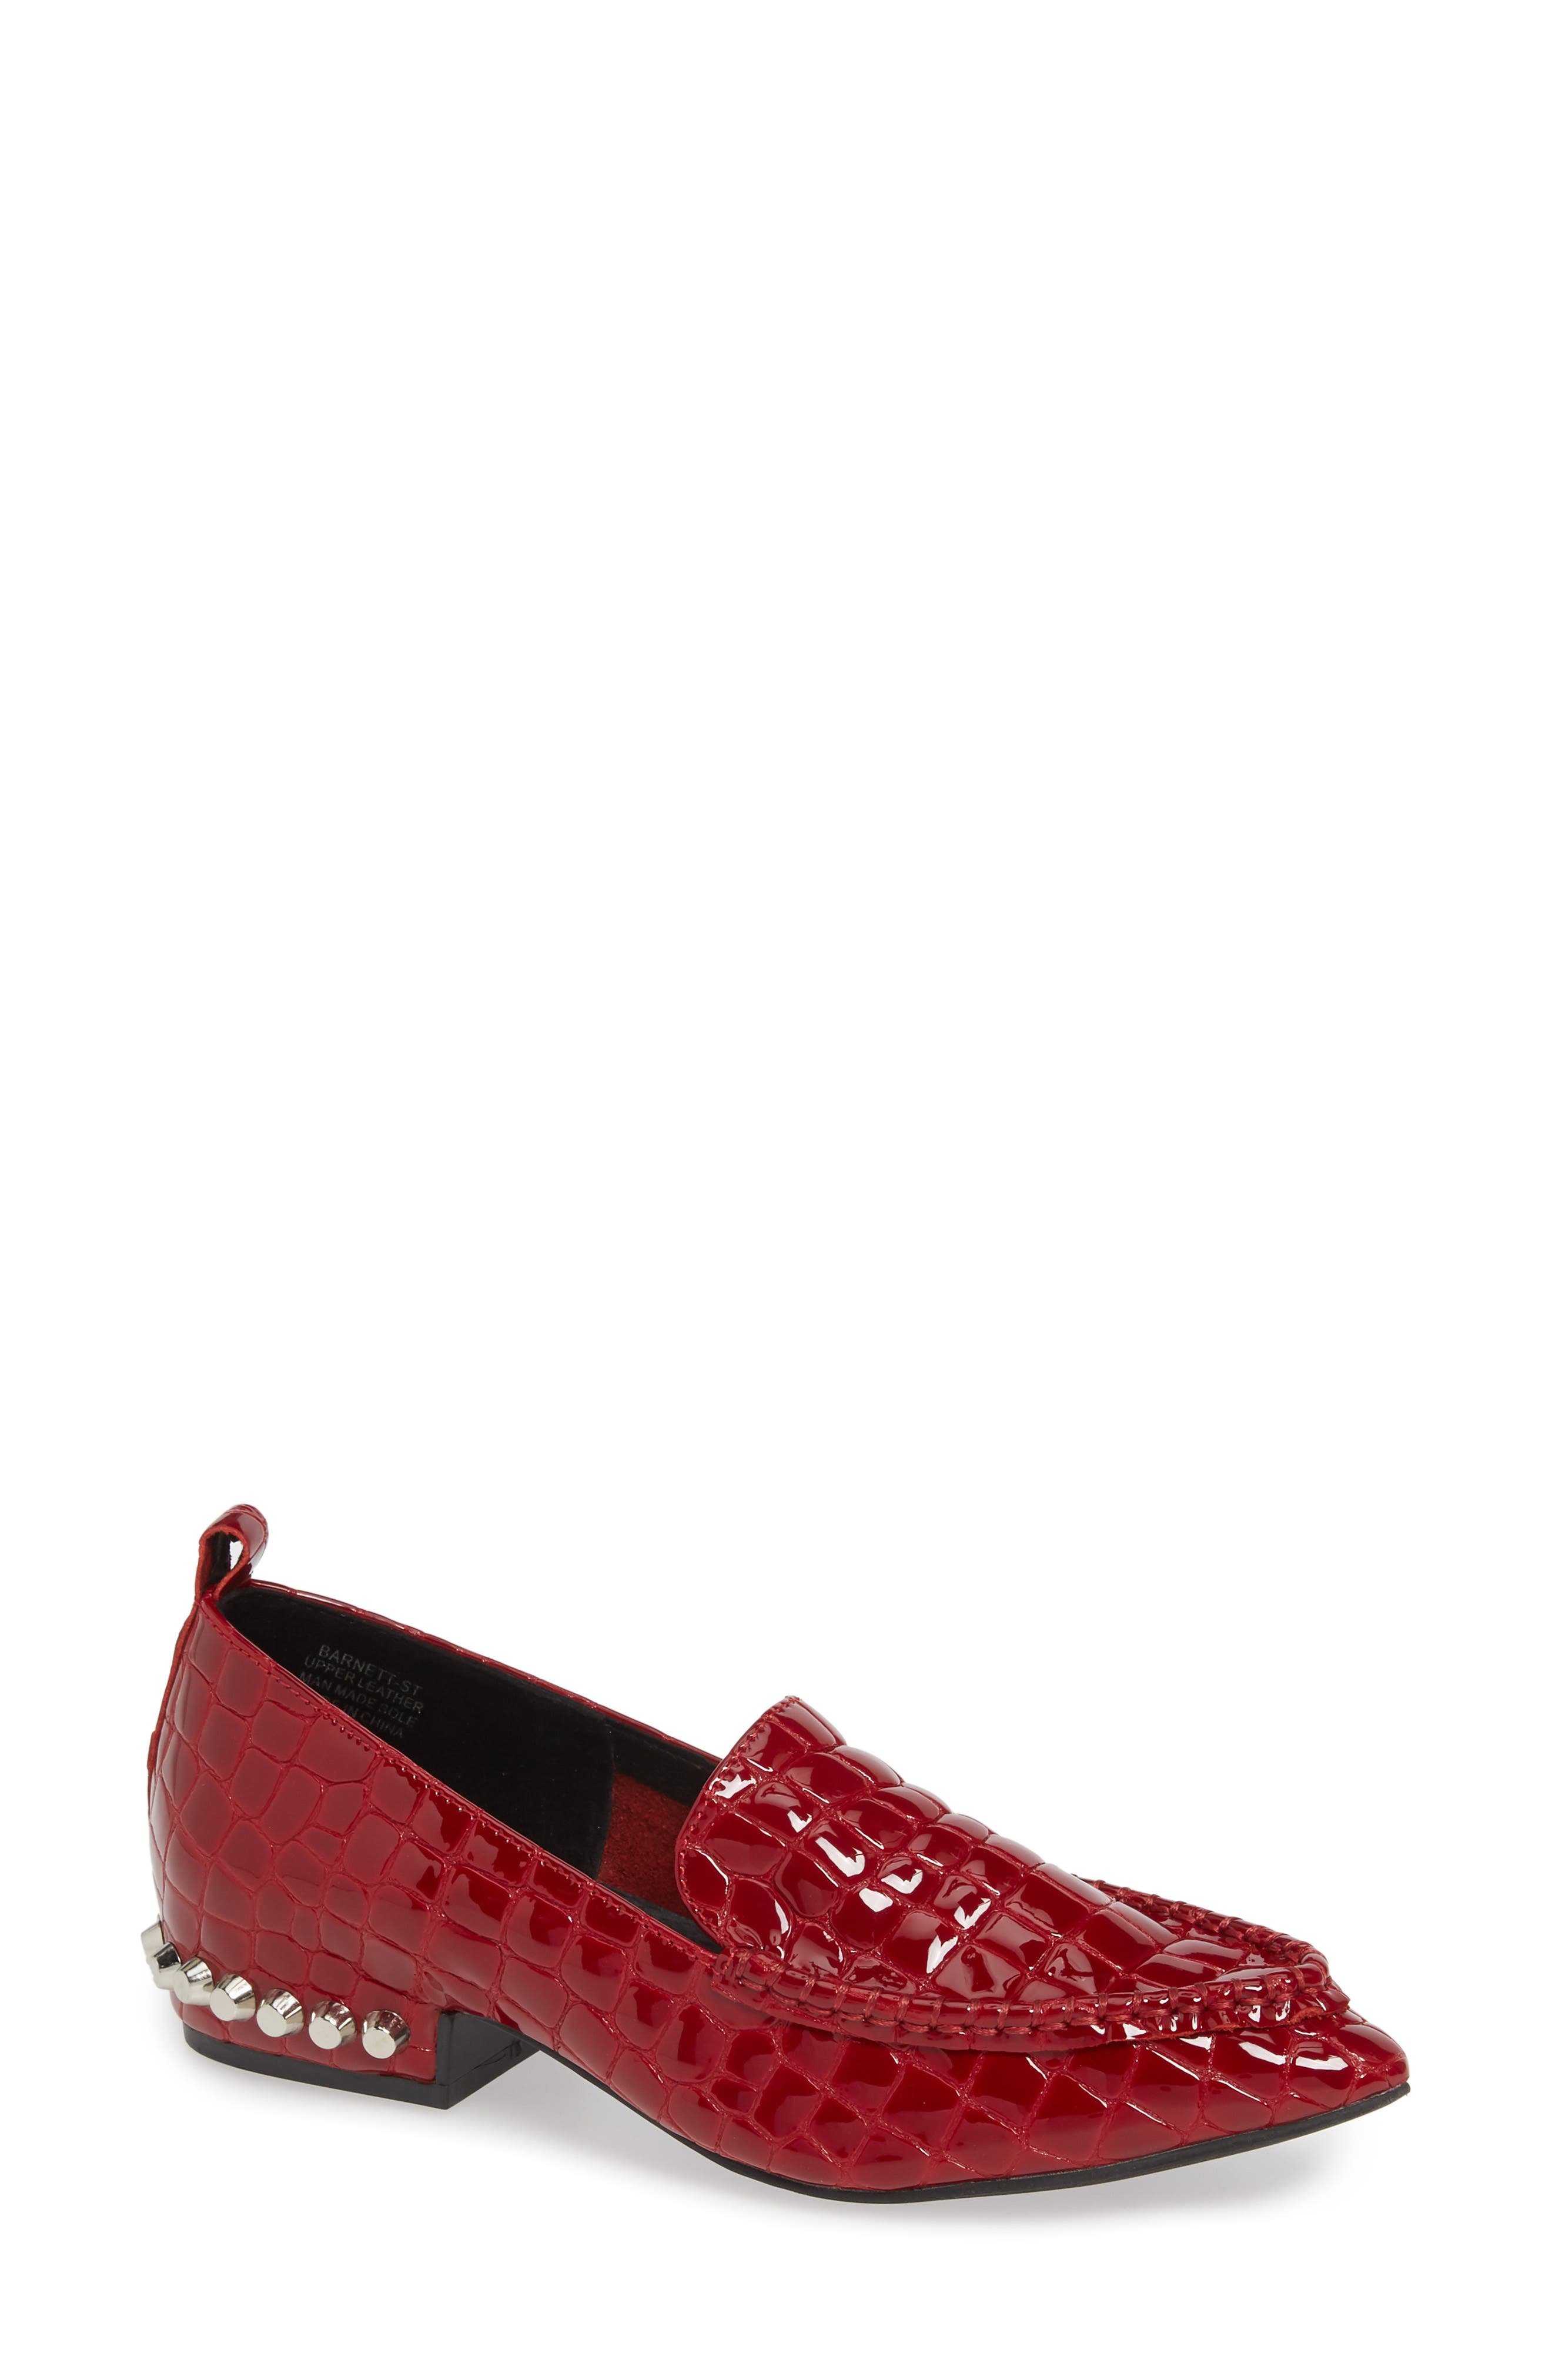 JEFFREY CAMPBELL, Barnett Studded Loafer, Main thumbnail 1, color, RED CROCODILE PRINT LEATHER